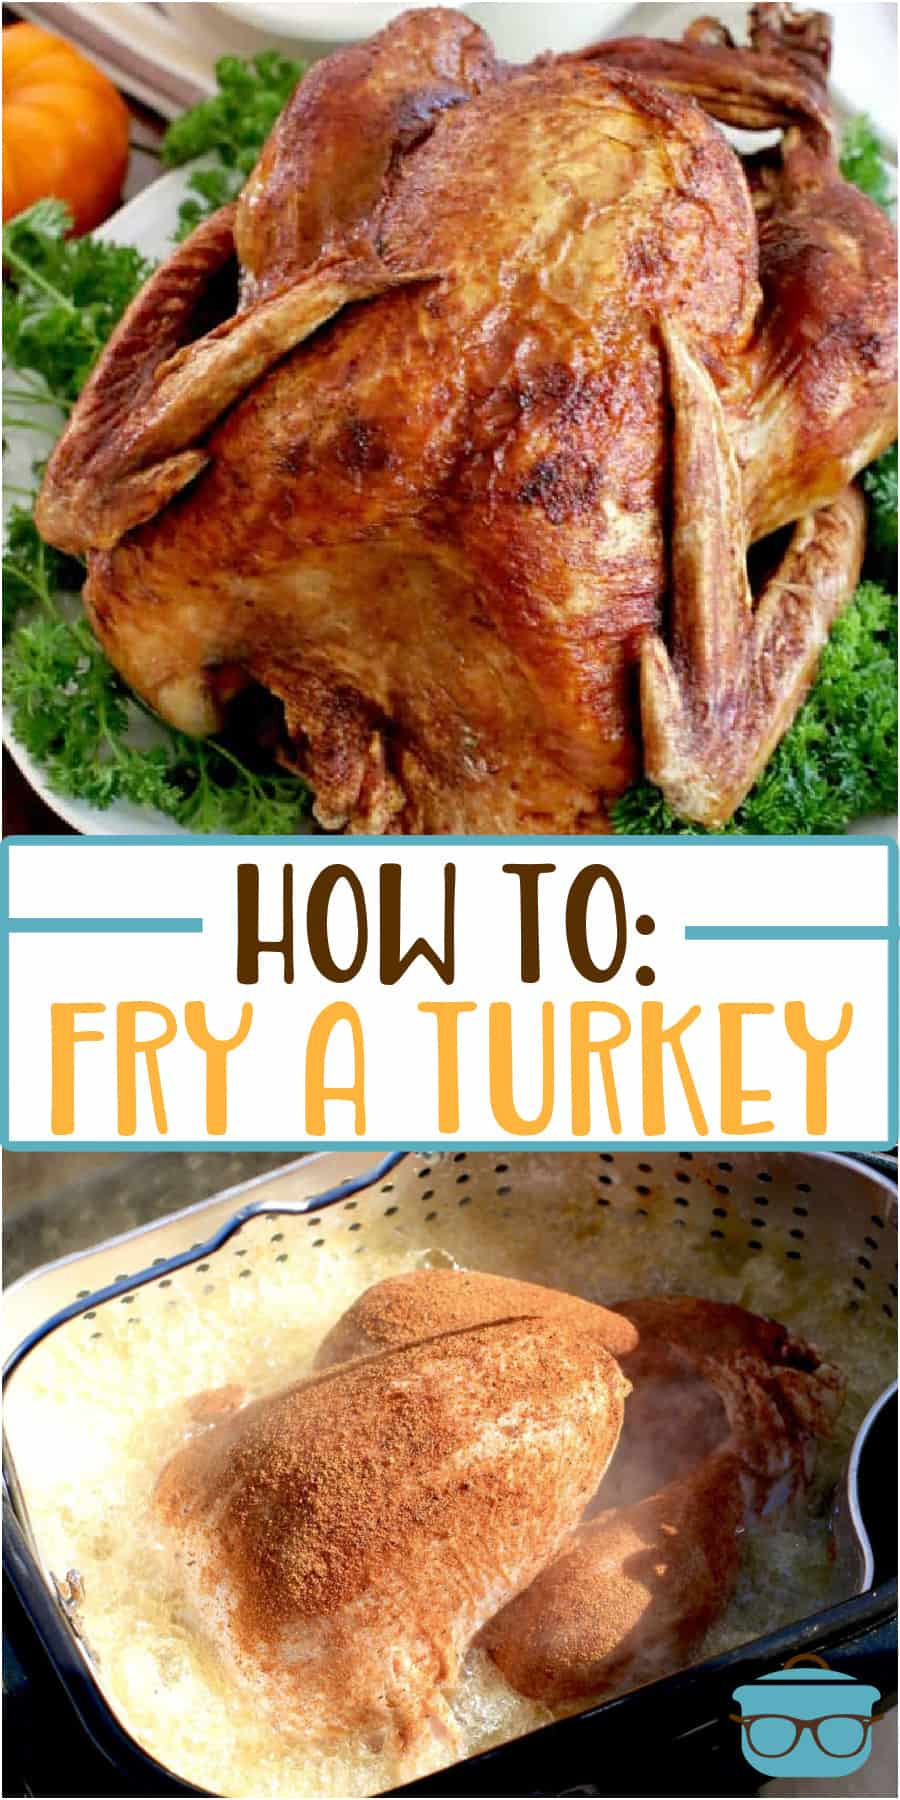 How to: Fry a Turkey (with step-by-step photos) using an electric turkey fryer. Tips given for quick-thawing a turkey and seasoning.